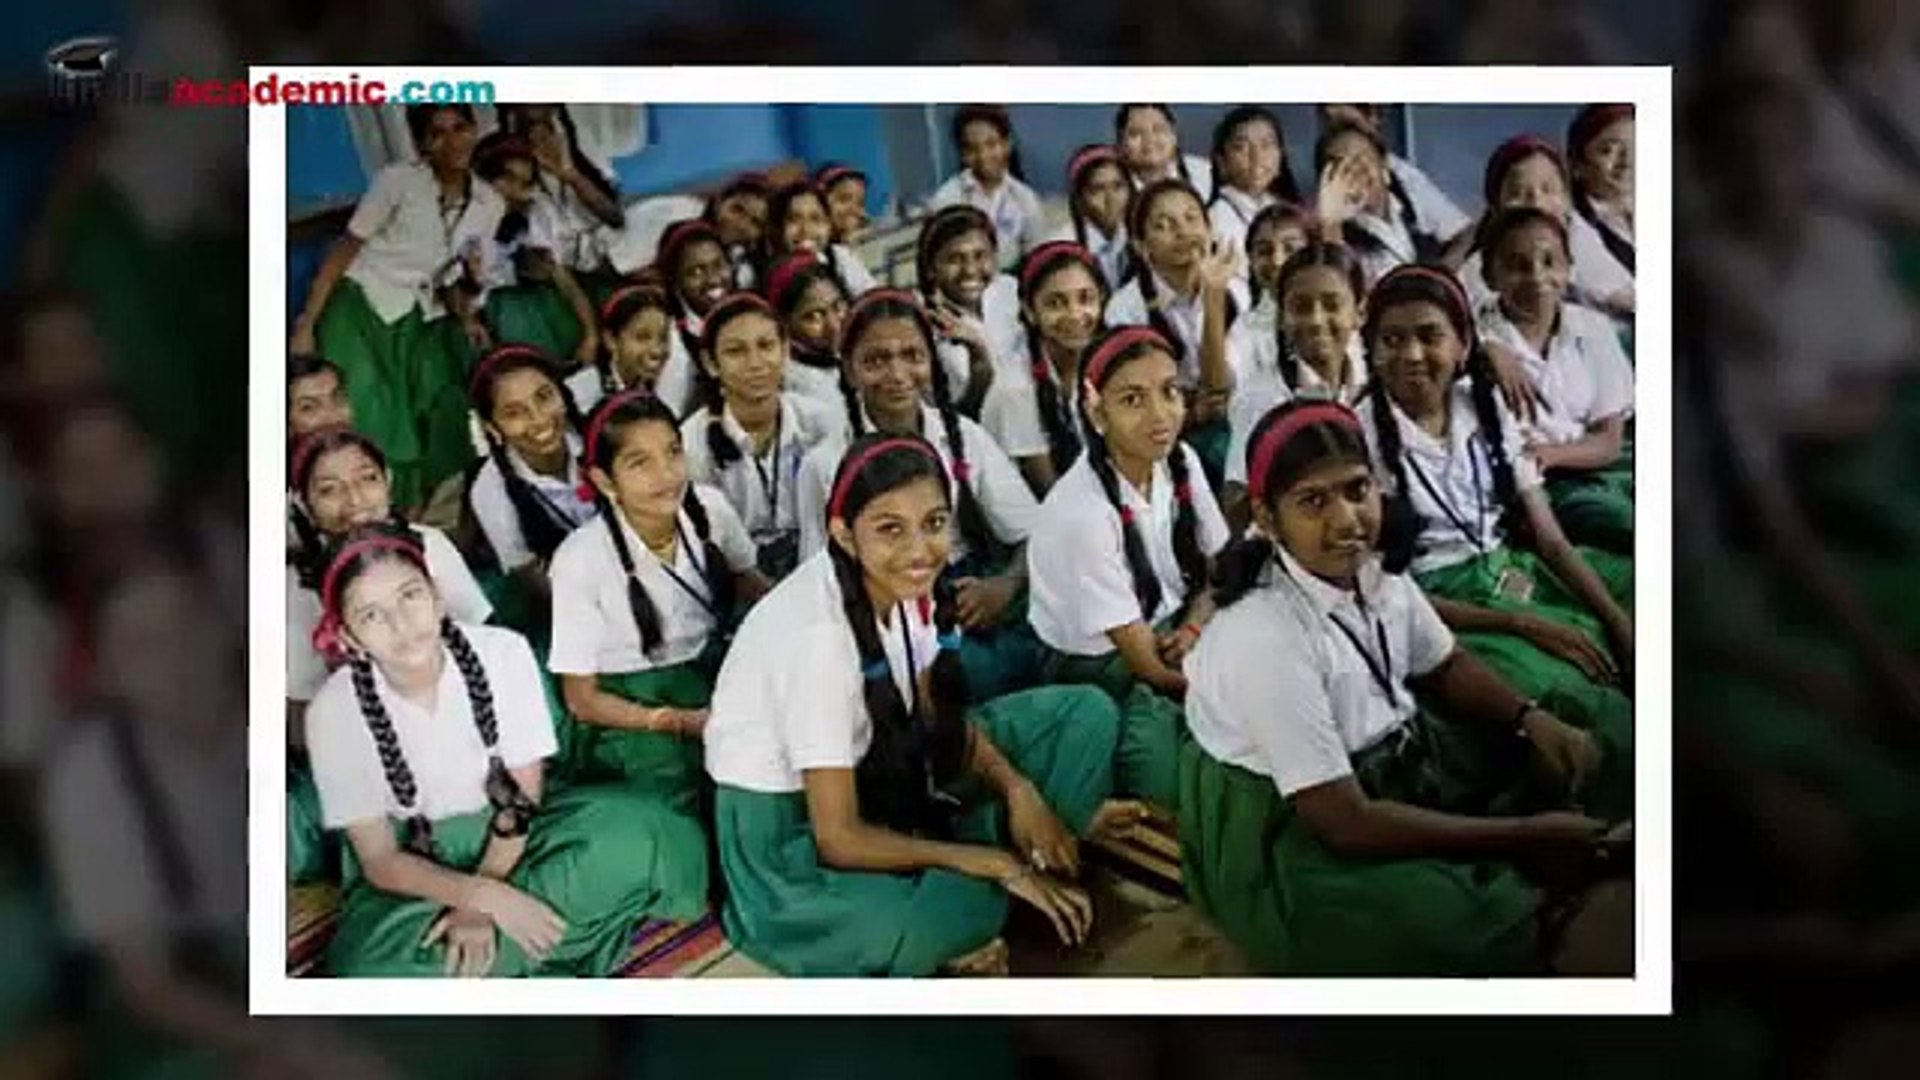 India Education - Education System in India